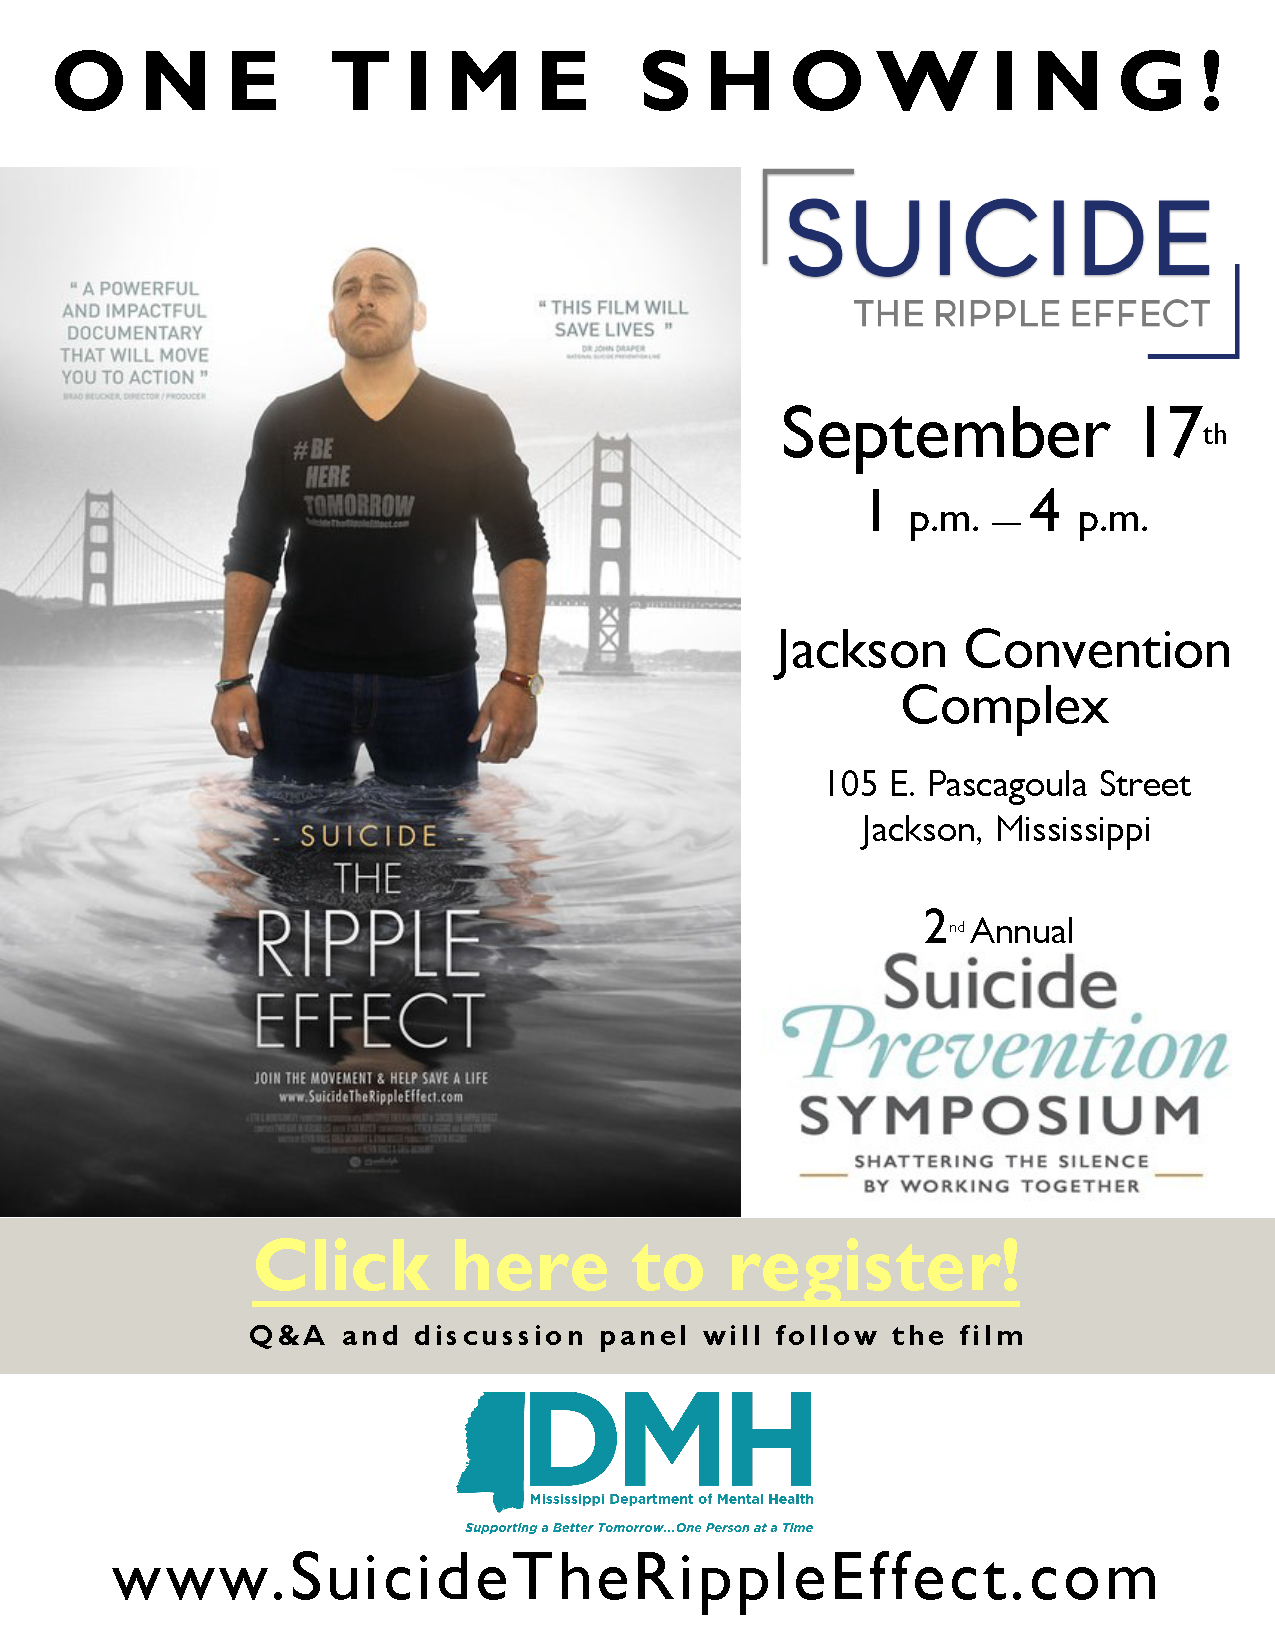 Second Annual Suicide Prevention Symposium Is September 17 Ms